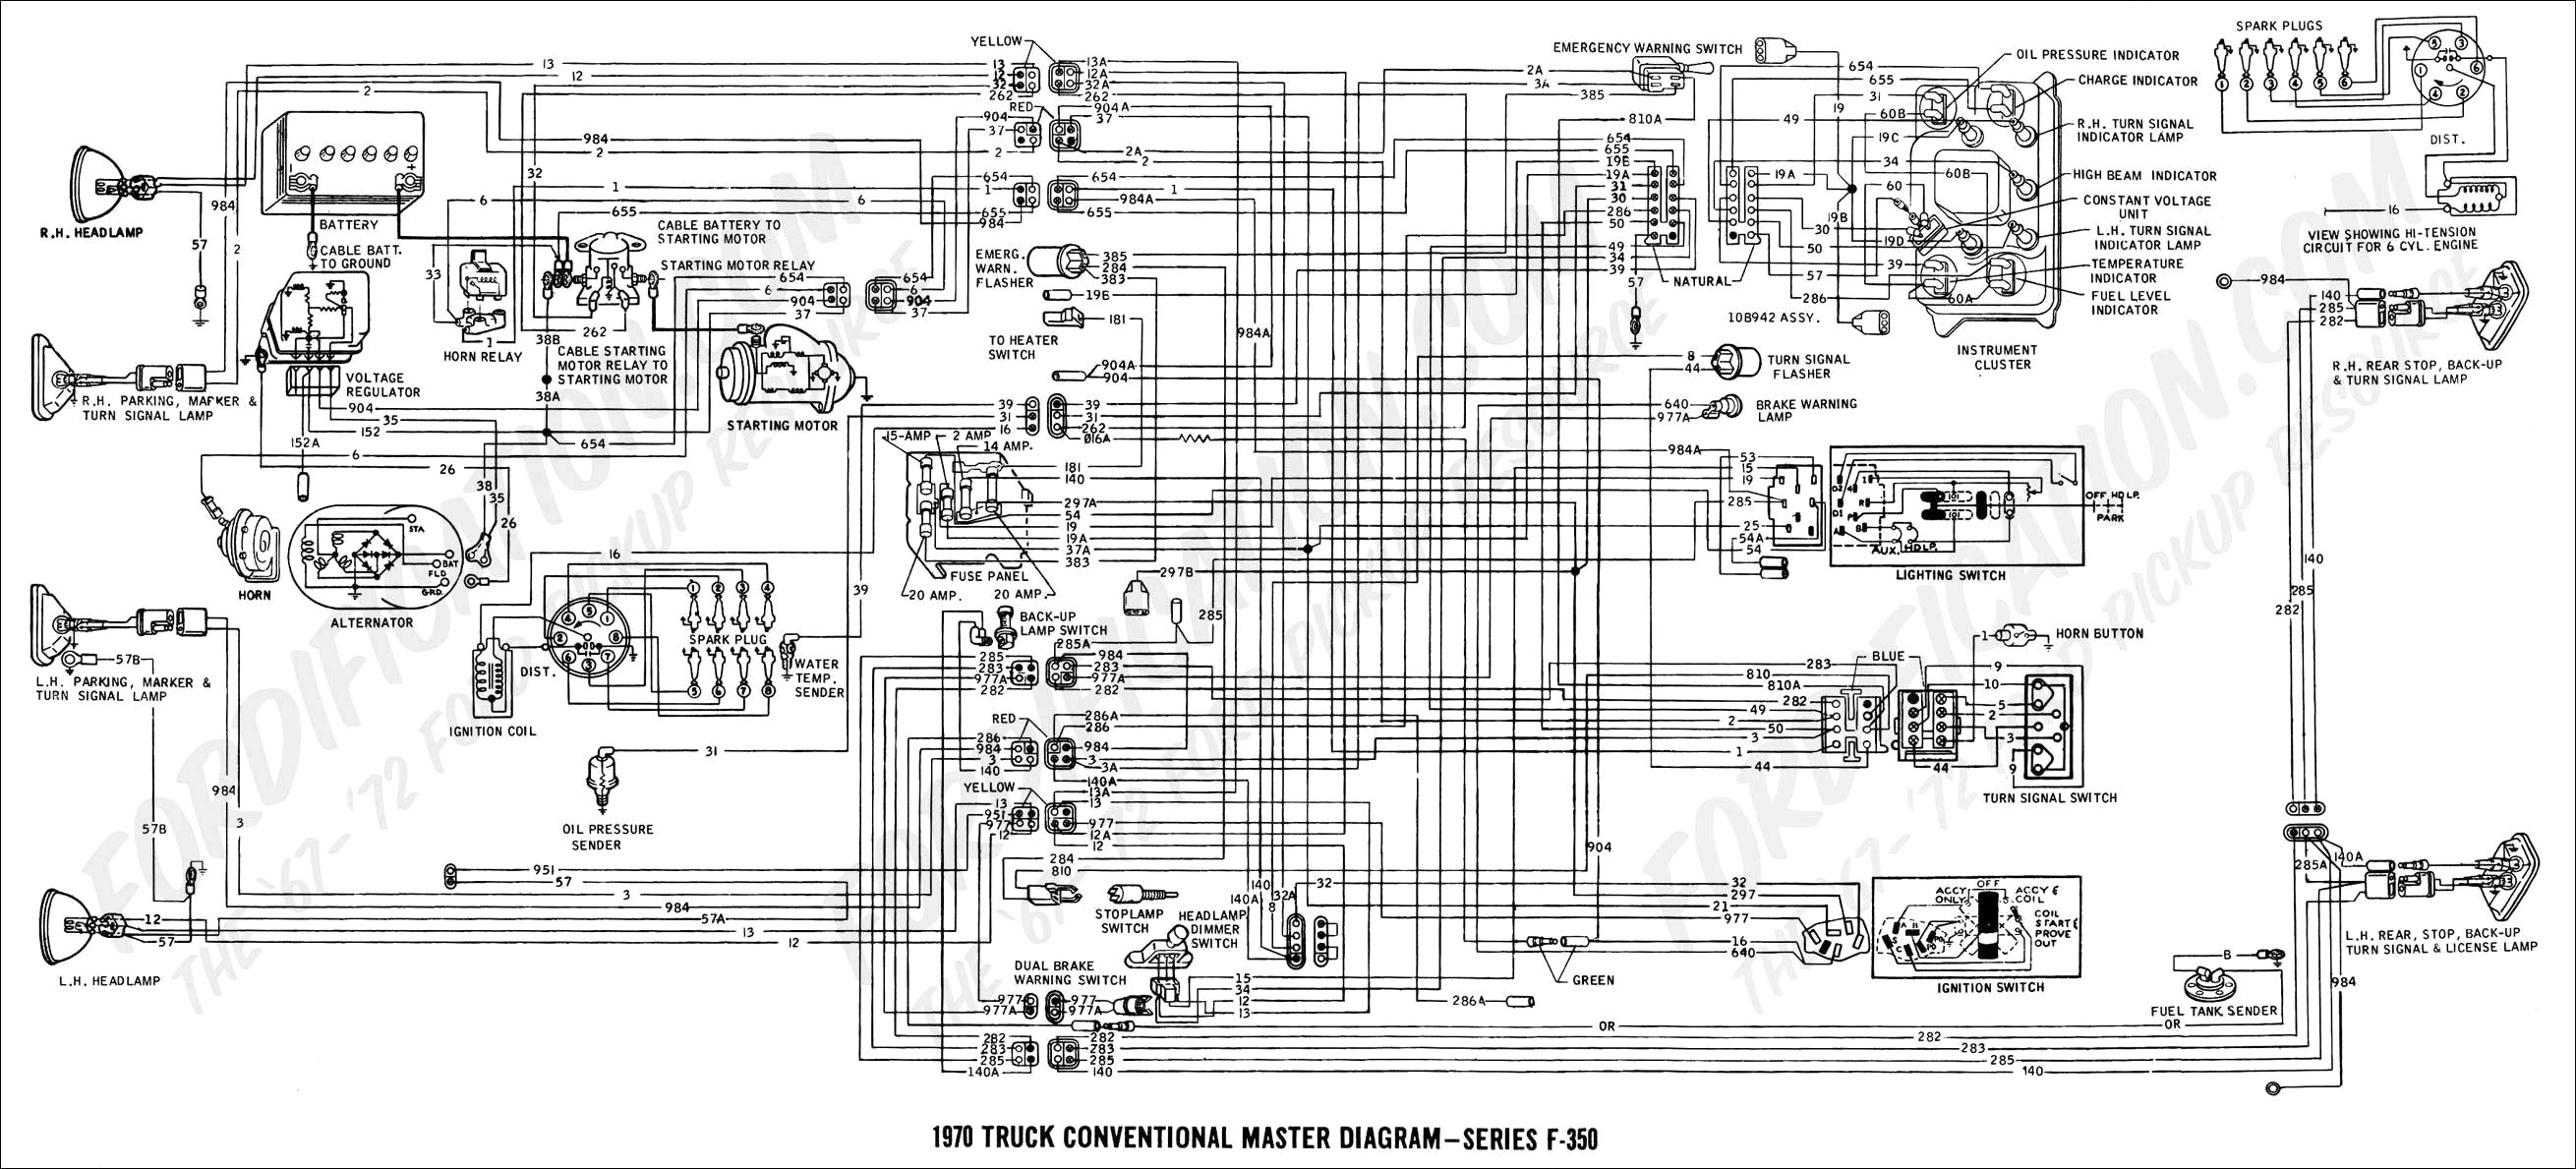 1995 Chevy Truck Parts Diagram 1967 C10 Wiring Diagram Truck Parts ...